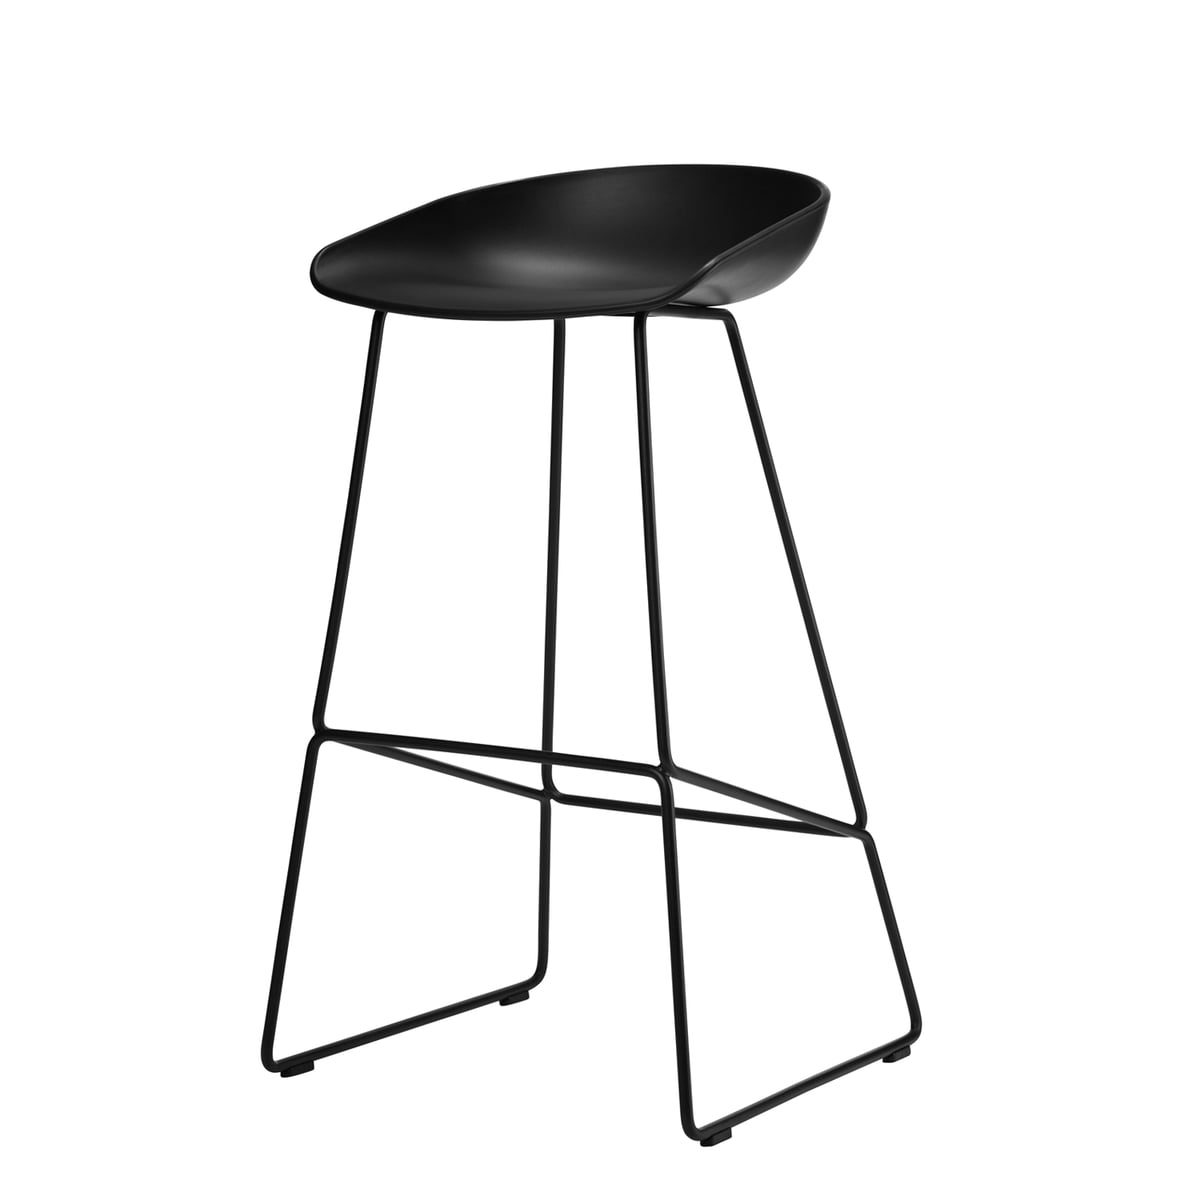 The Hay About A Stool AAS 38 In Design Shop